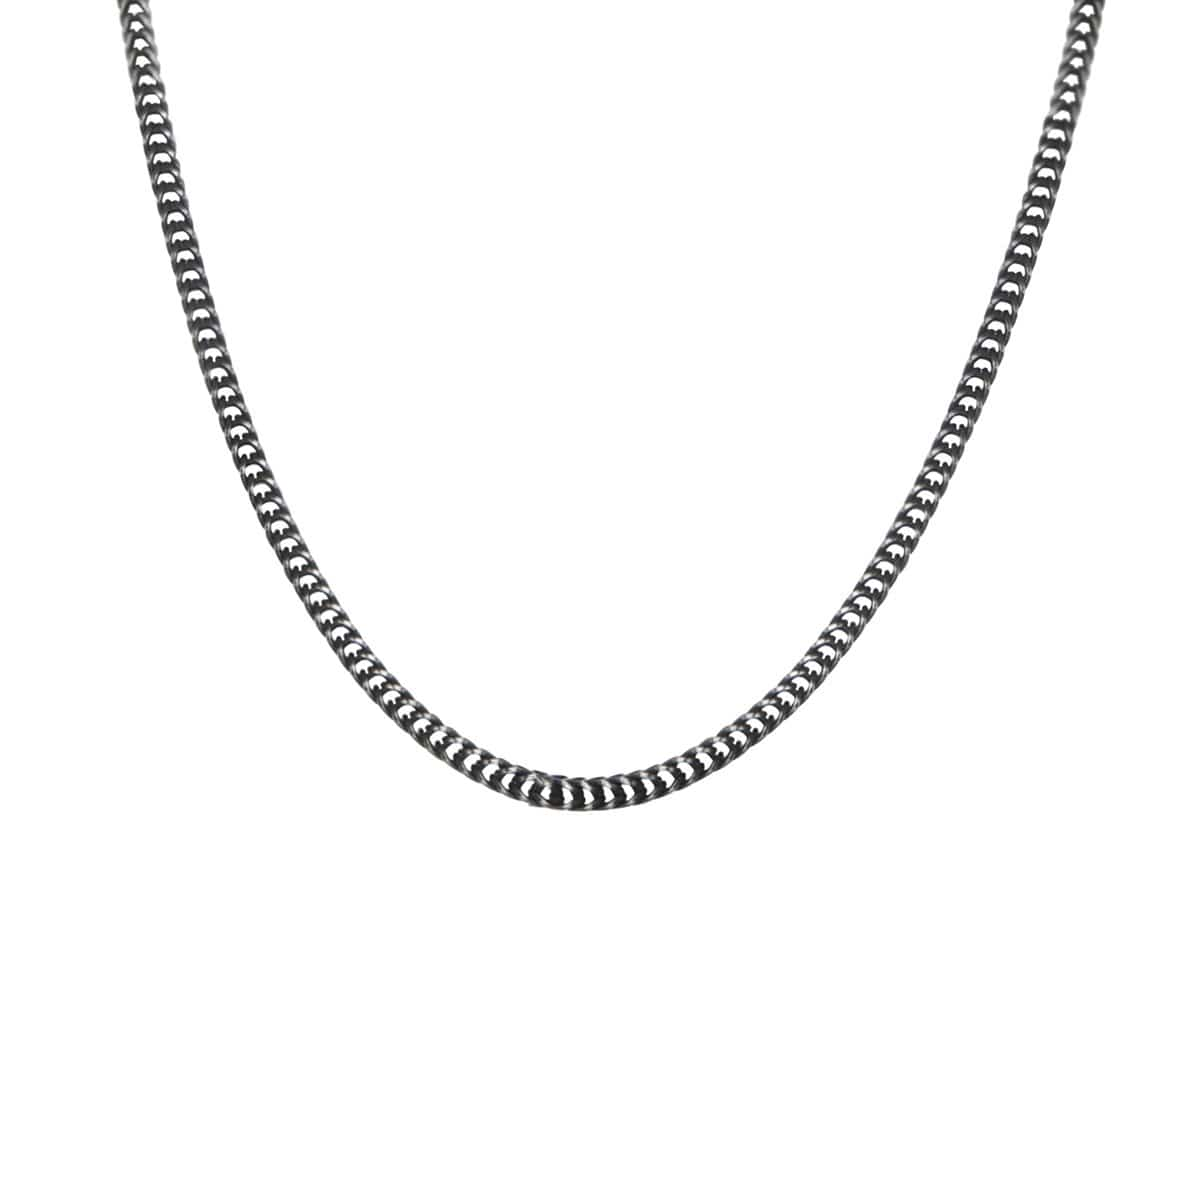 Darkened Silver Stainless Steel 3 mm Thin Wheat Chain Chains